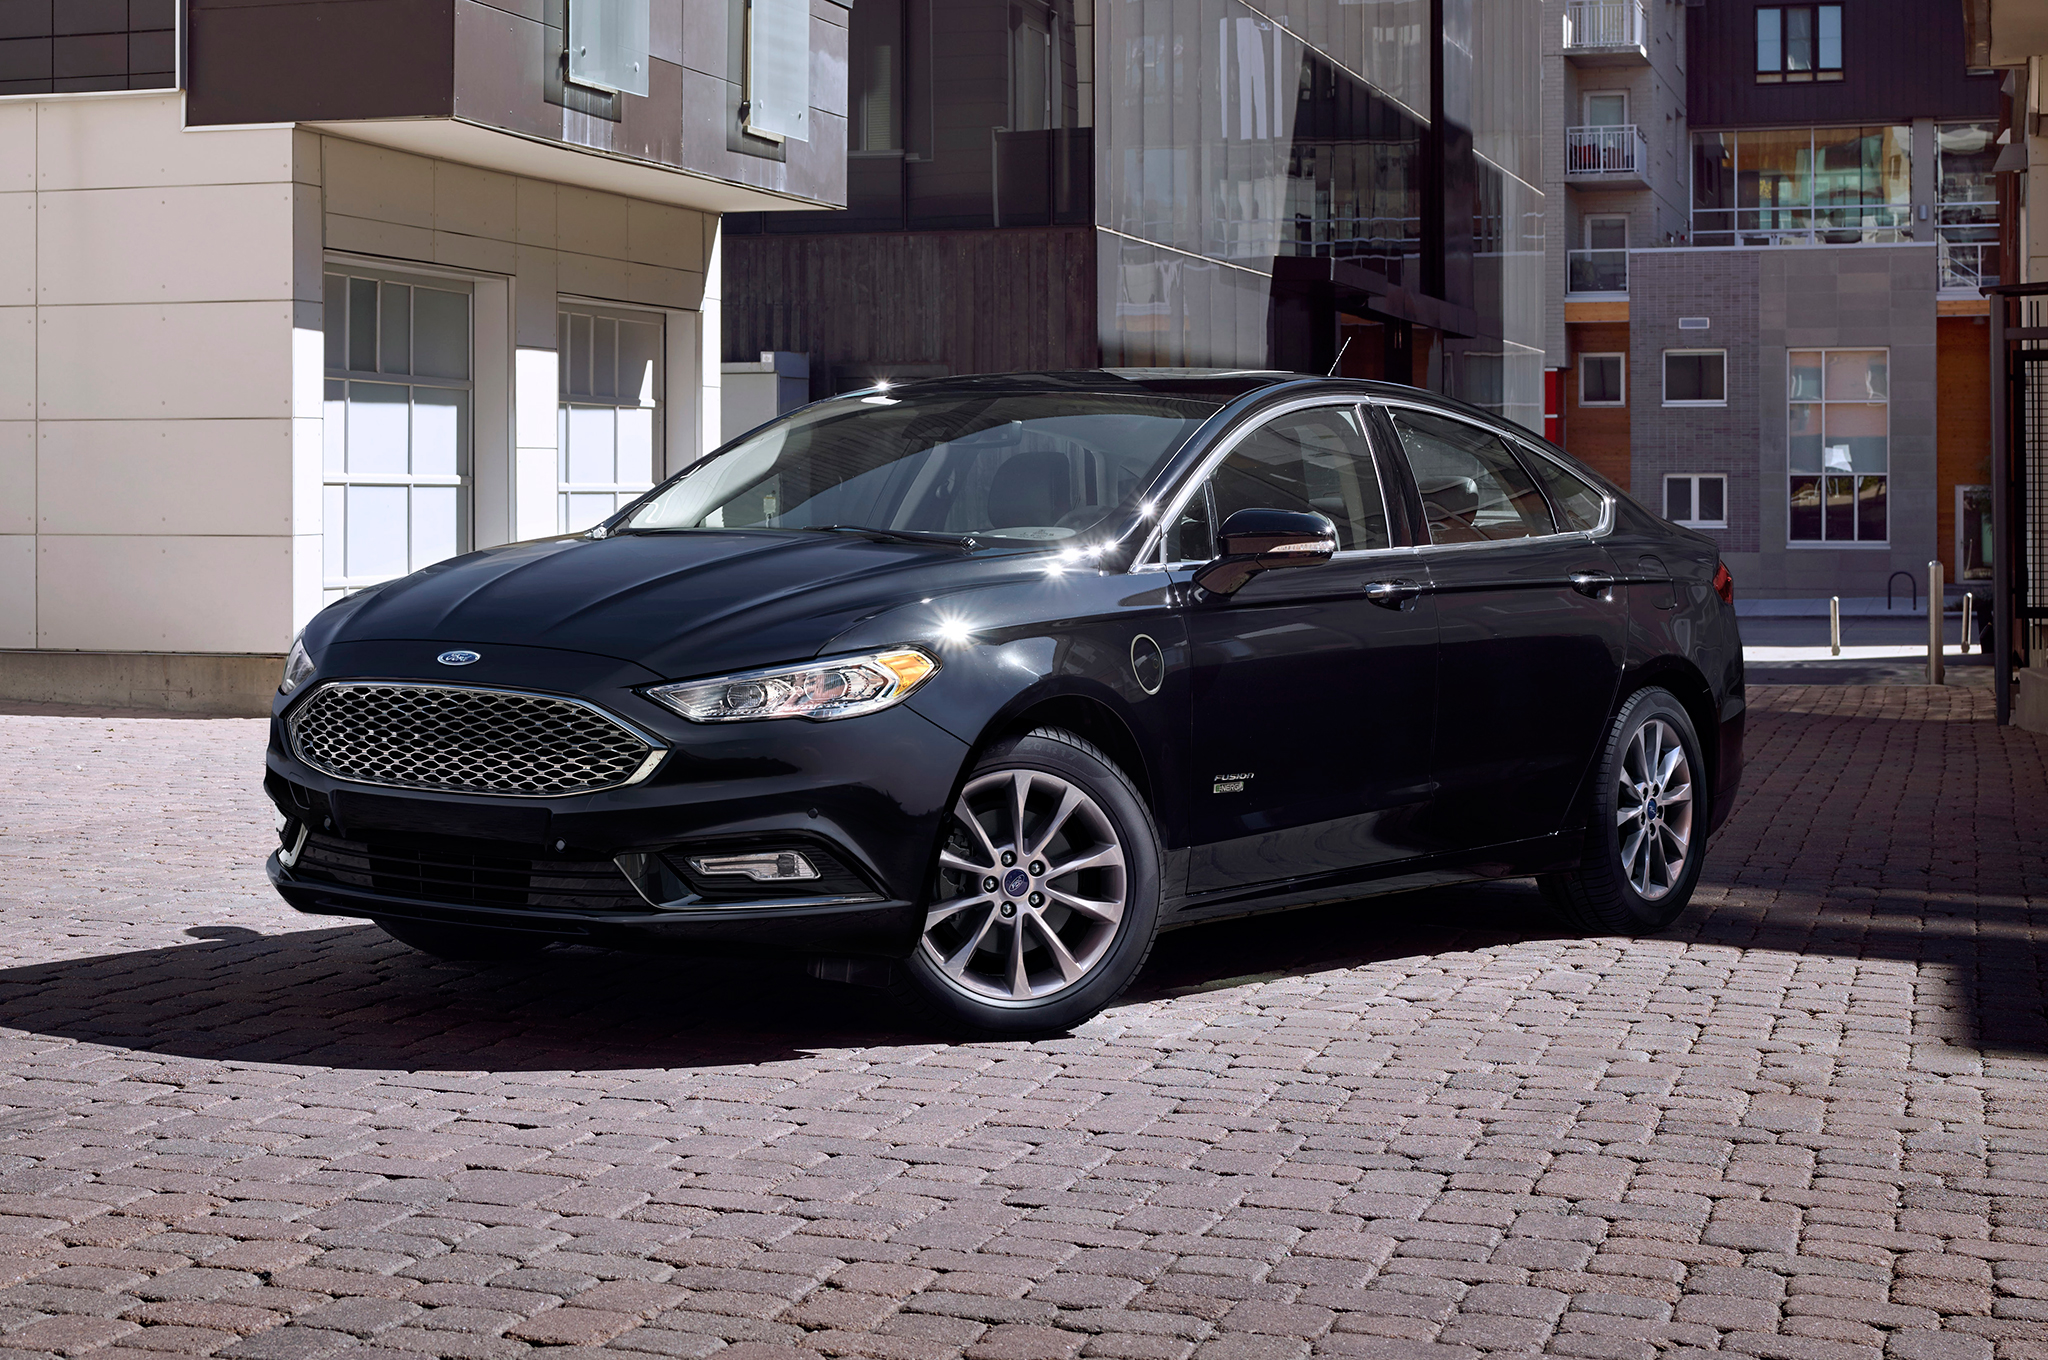 photos mpg informations for bestcarmag best cars platinum ford fusion new articles